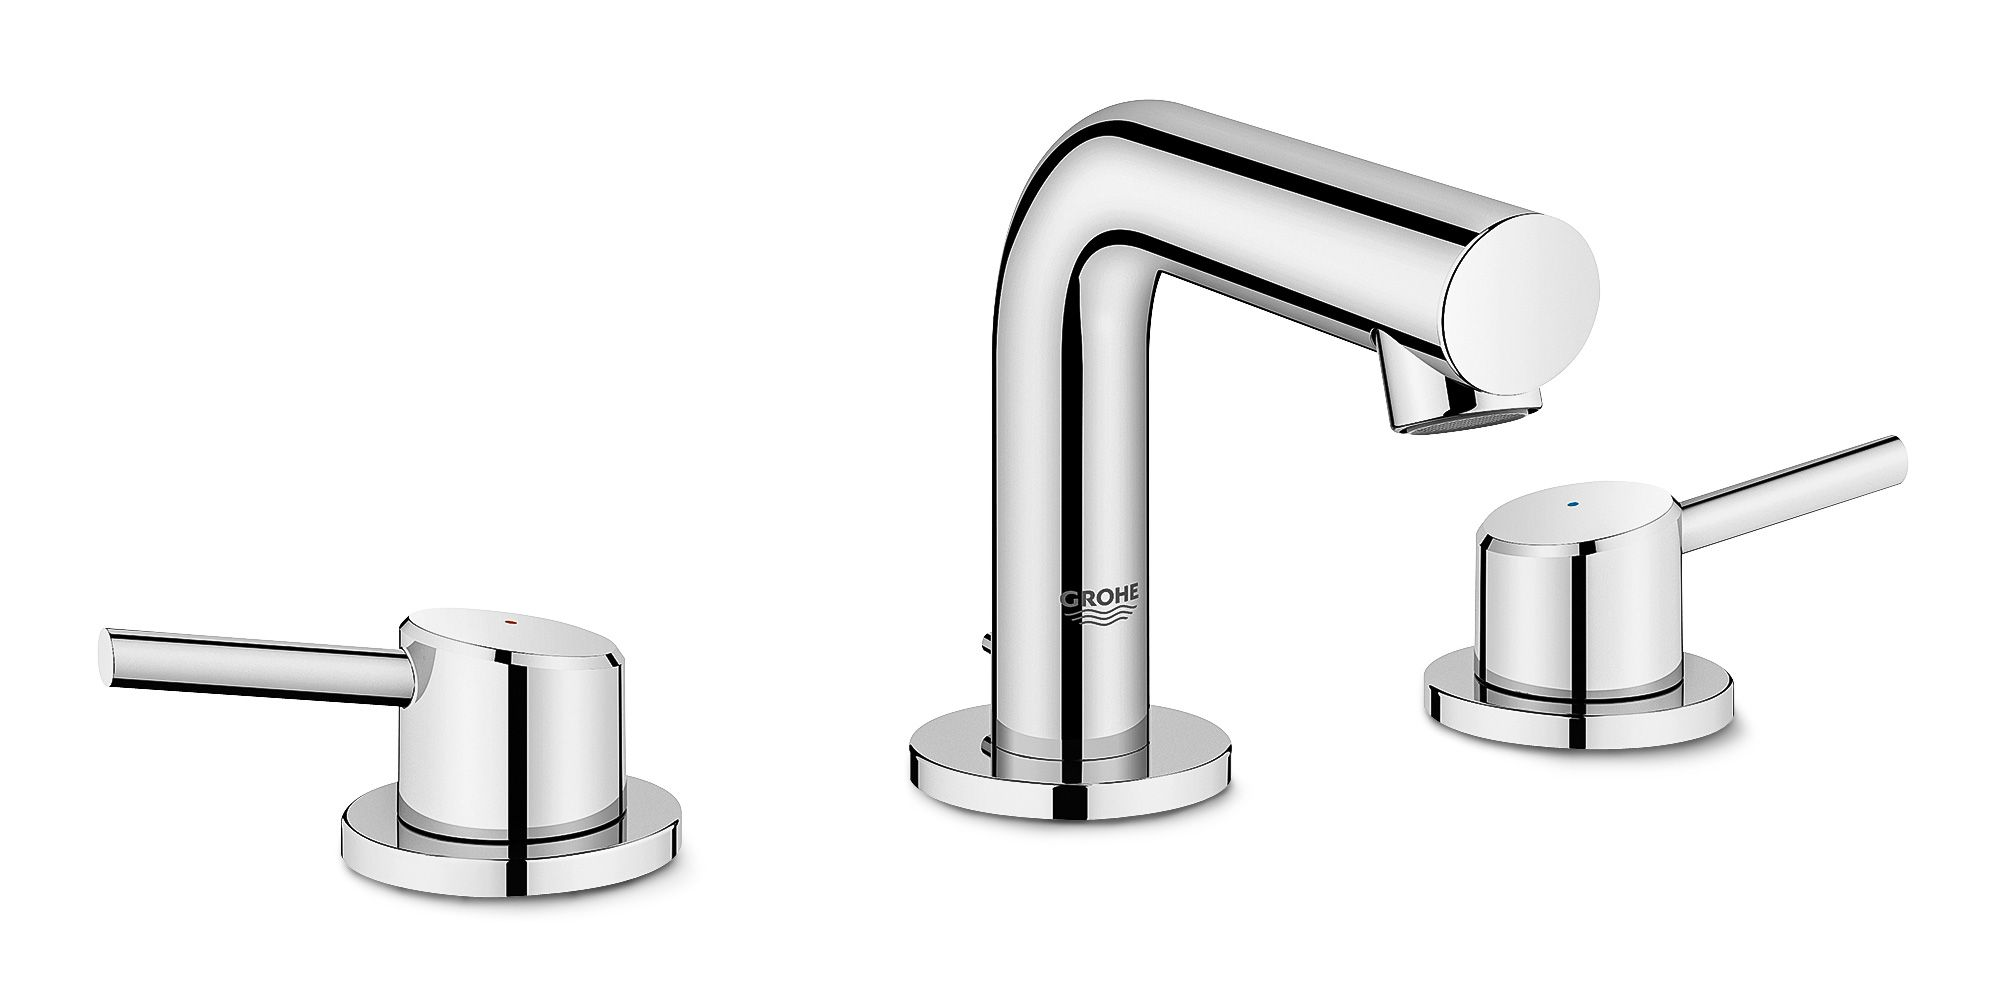 The Lever Handles On This 1 2 Gallon Per Minute Grohe Faucet Make